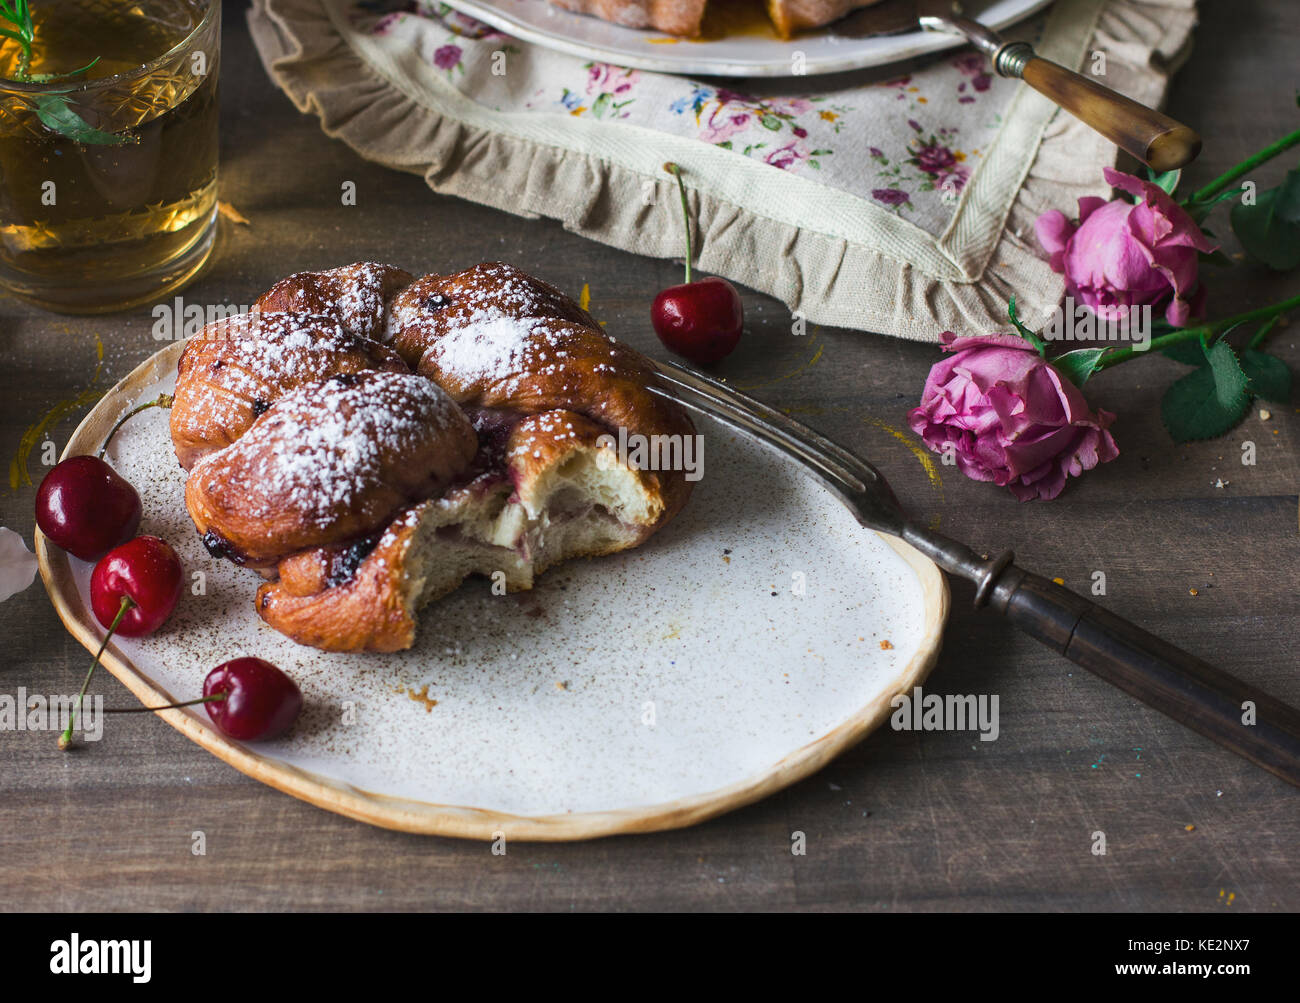 Homemade bun on the plate with cherries - Stock Image